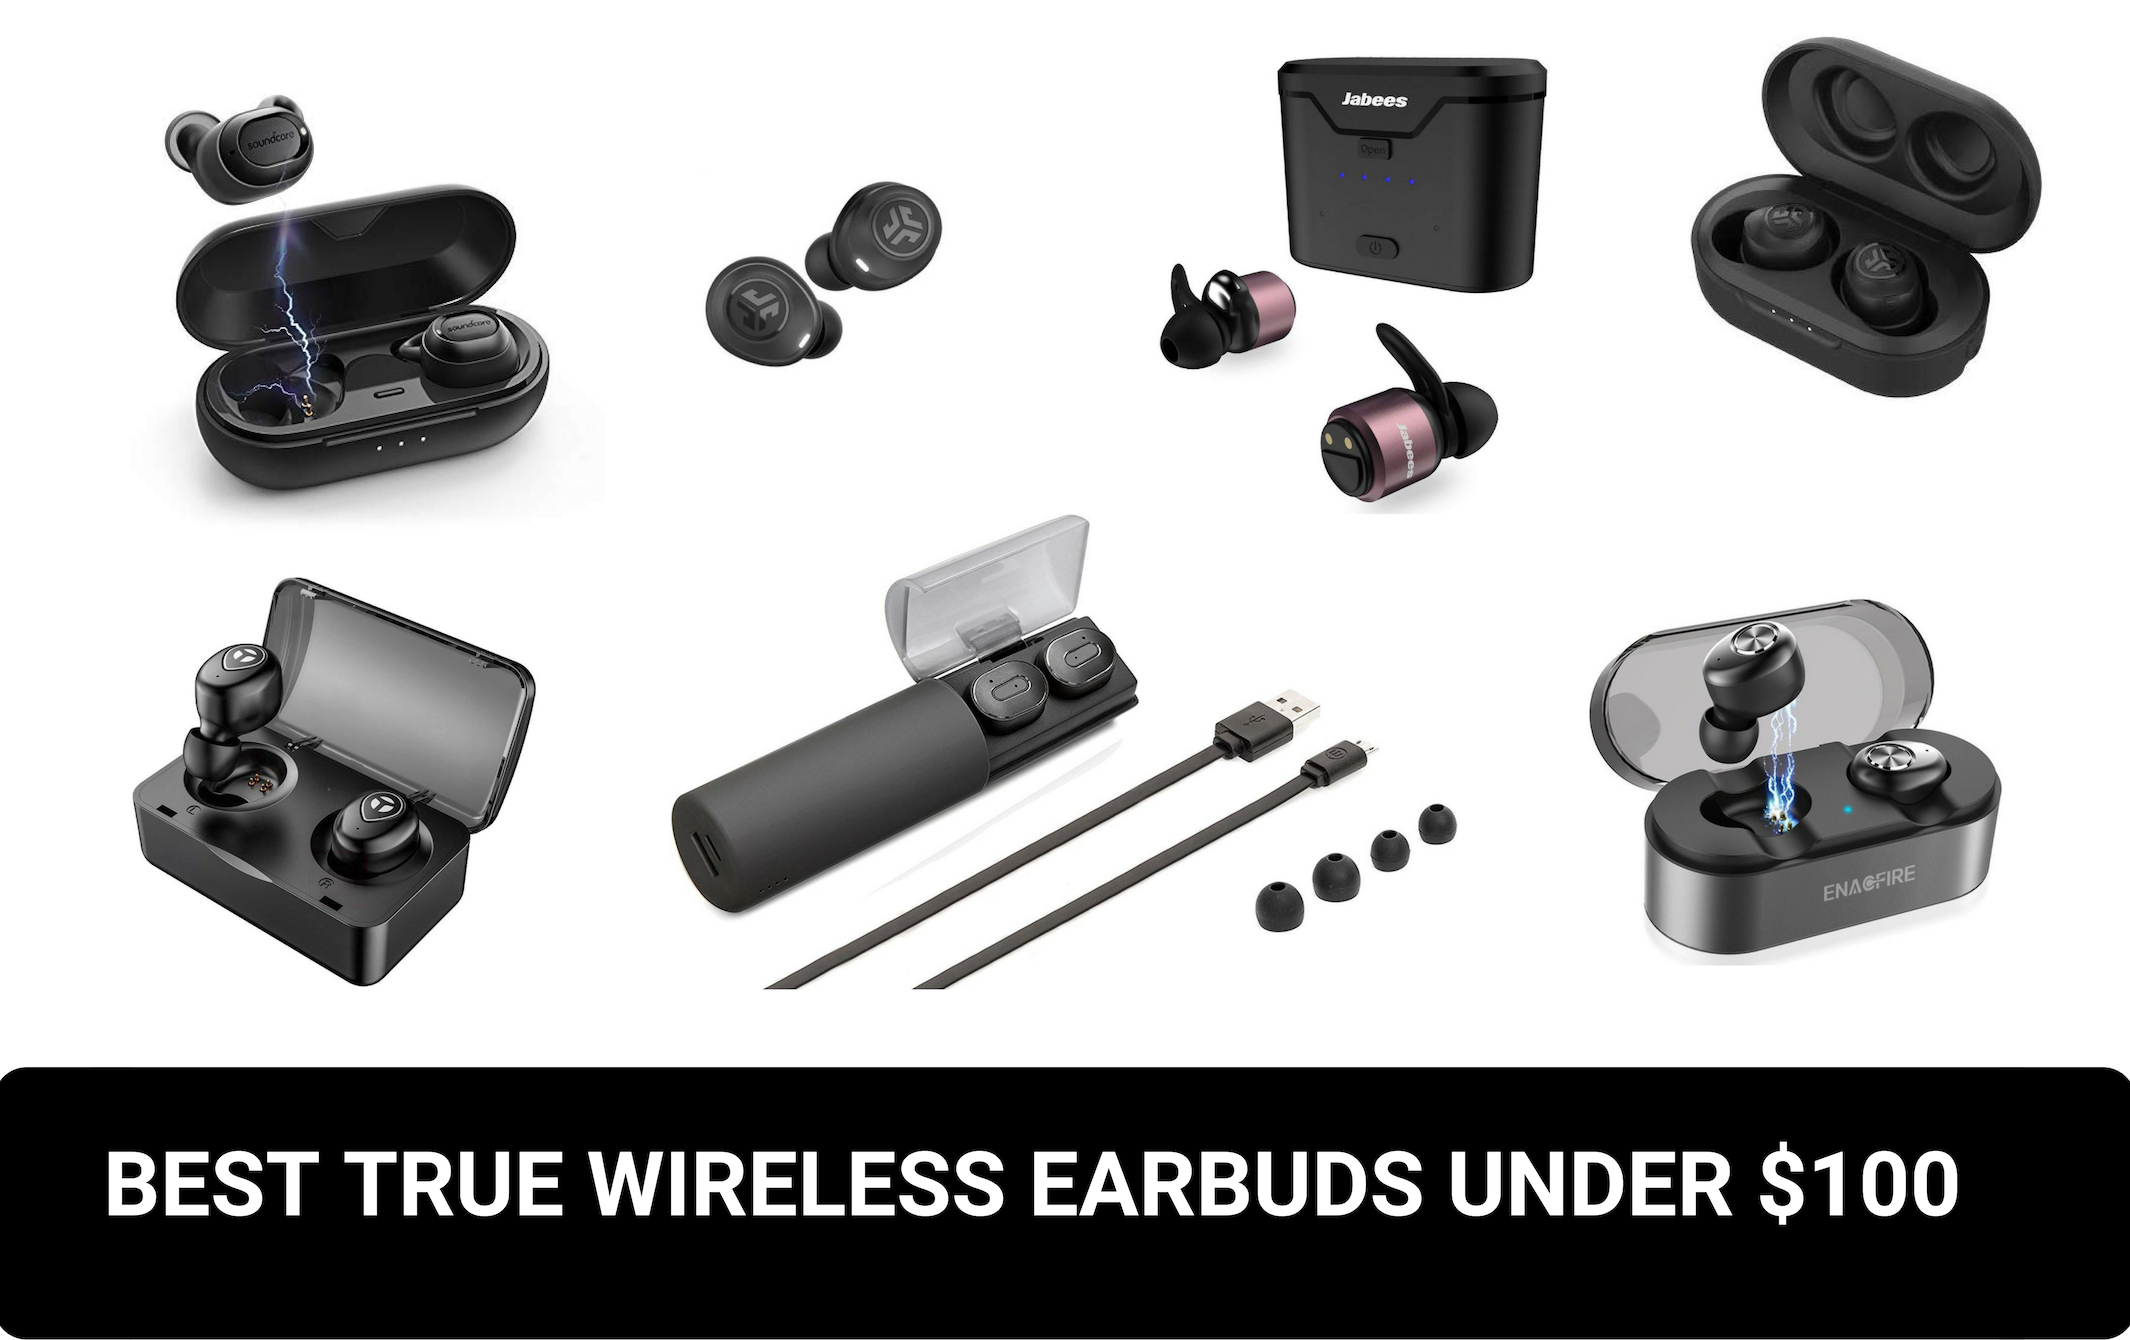 bb537e4ccba Best true wireless earbuds under $100